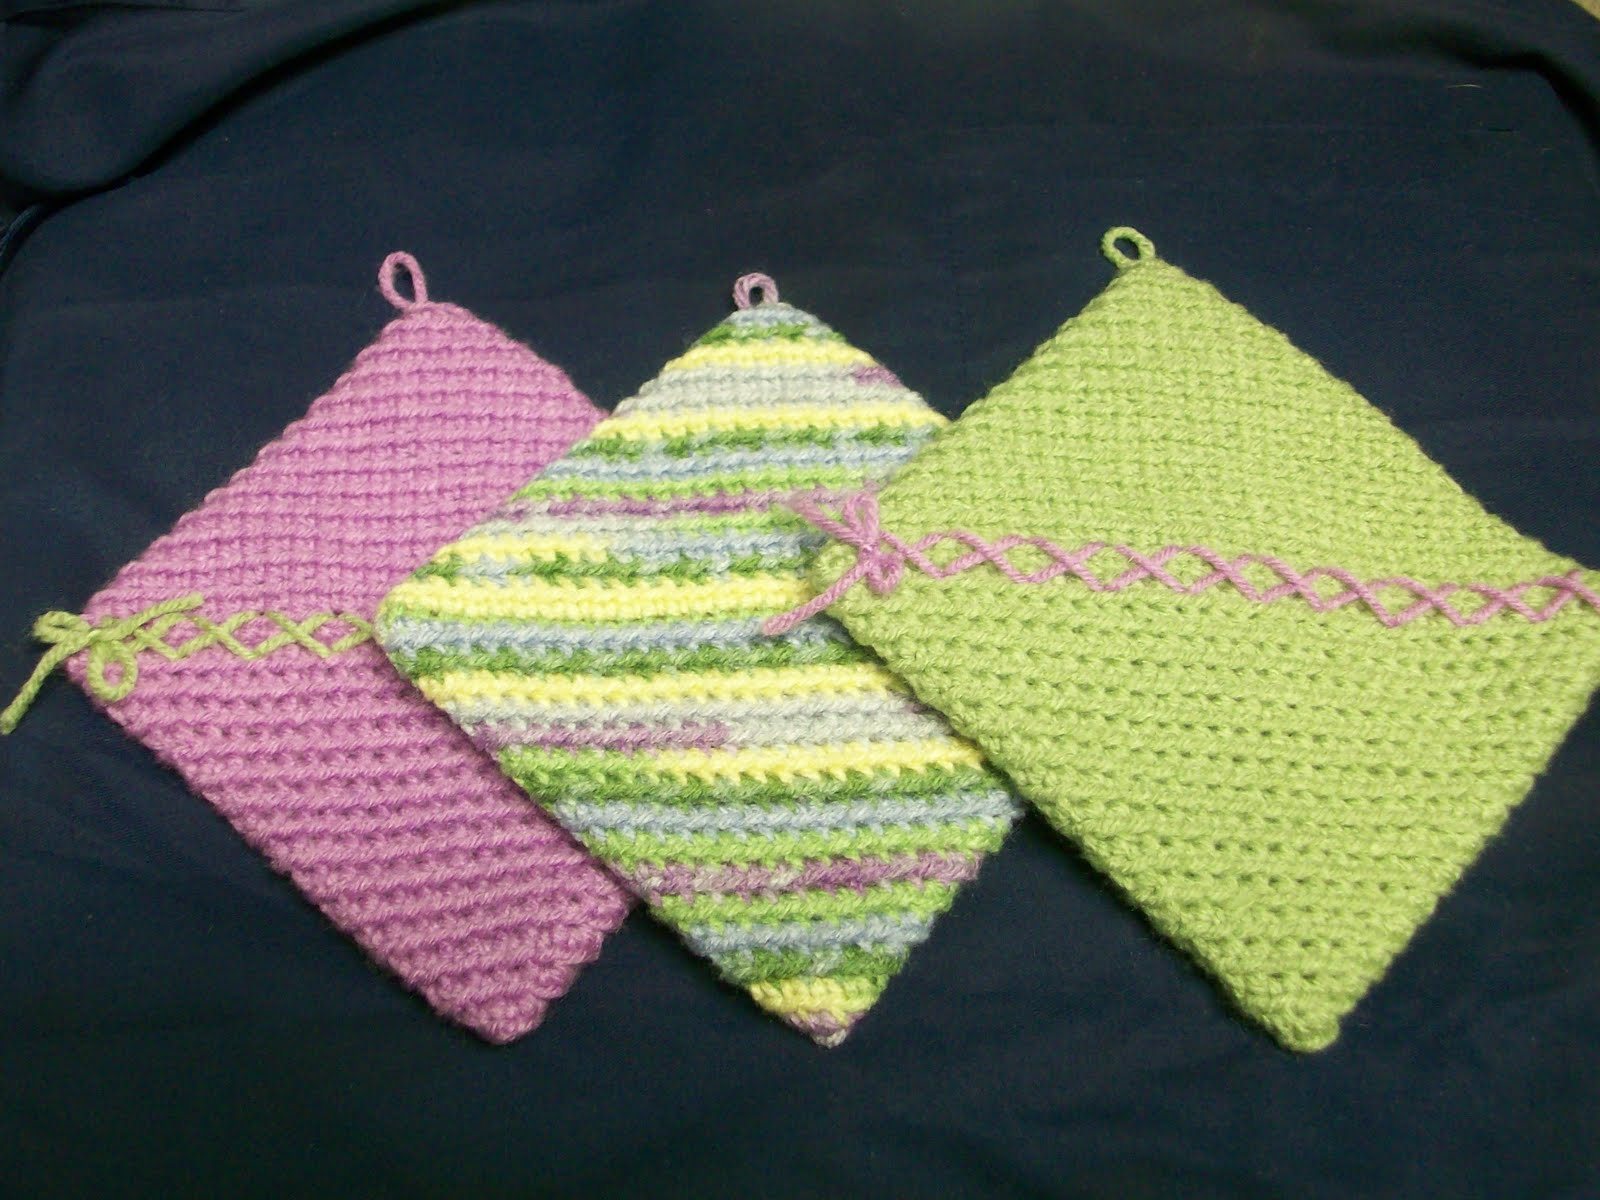 Crocheting Hotpads : My Crocheted World: Free Hotpad/Potholder Instructions